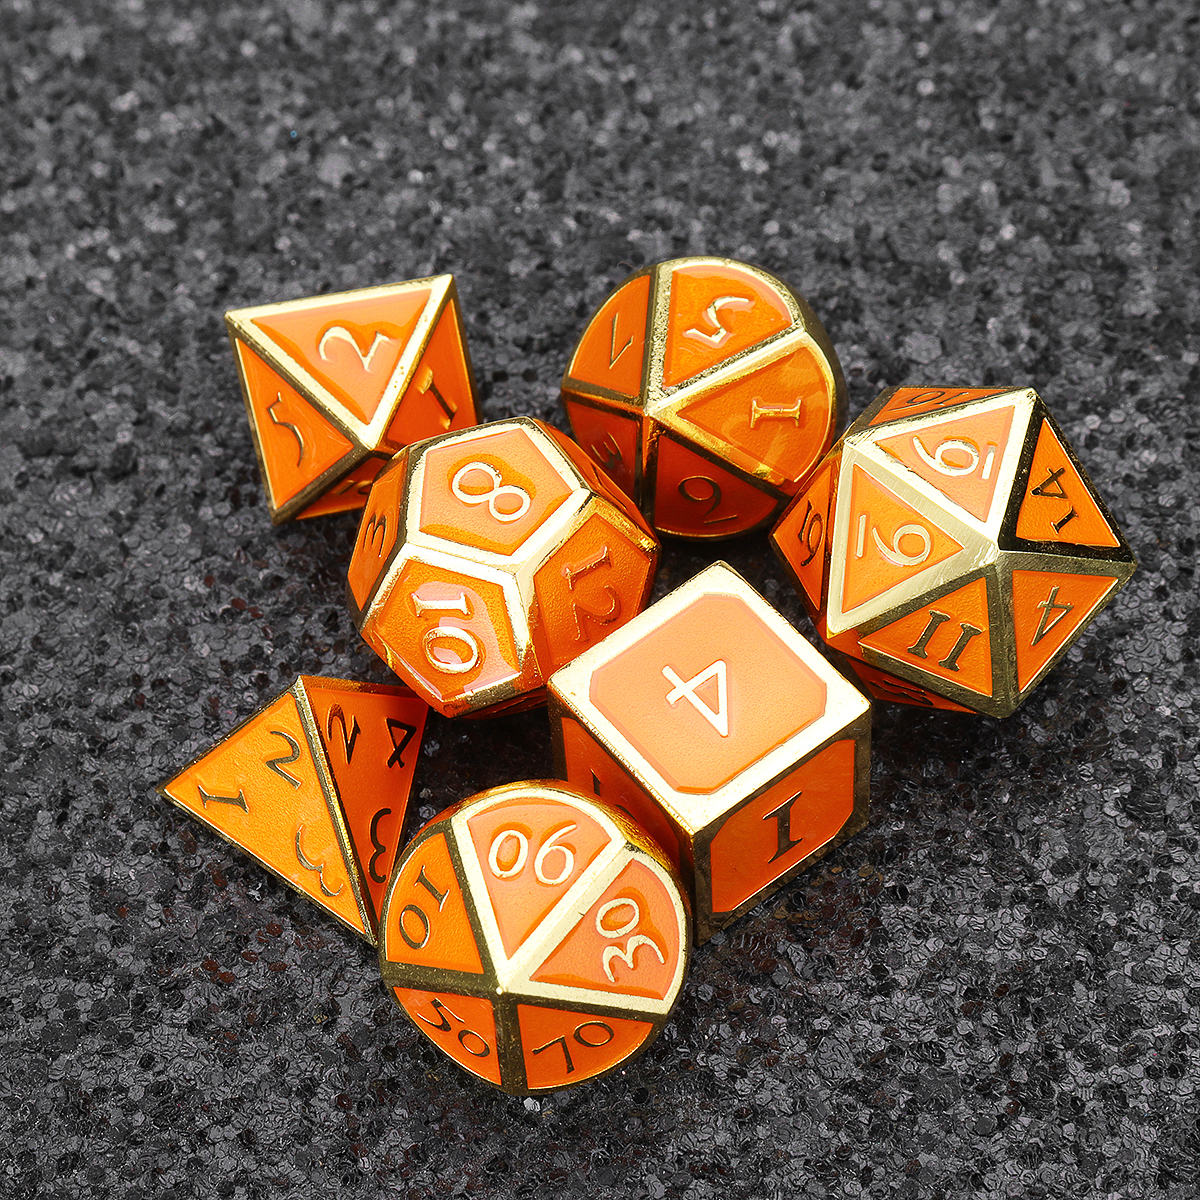 Solid Metal Heavy Dice Set Polyhedral Dices Role Playing Games Dice Gadget RPG